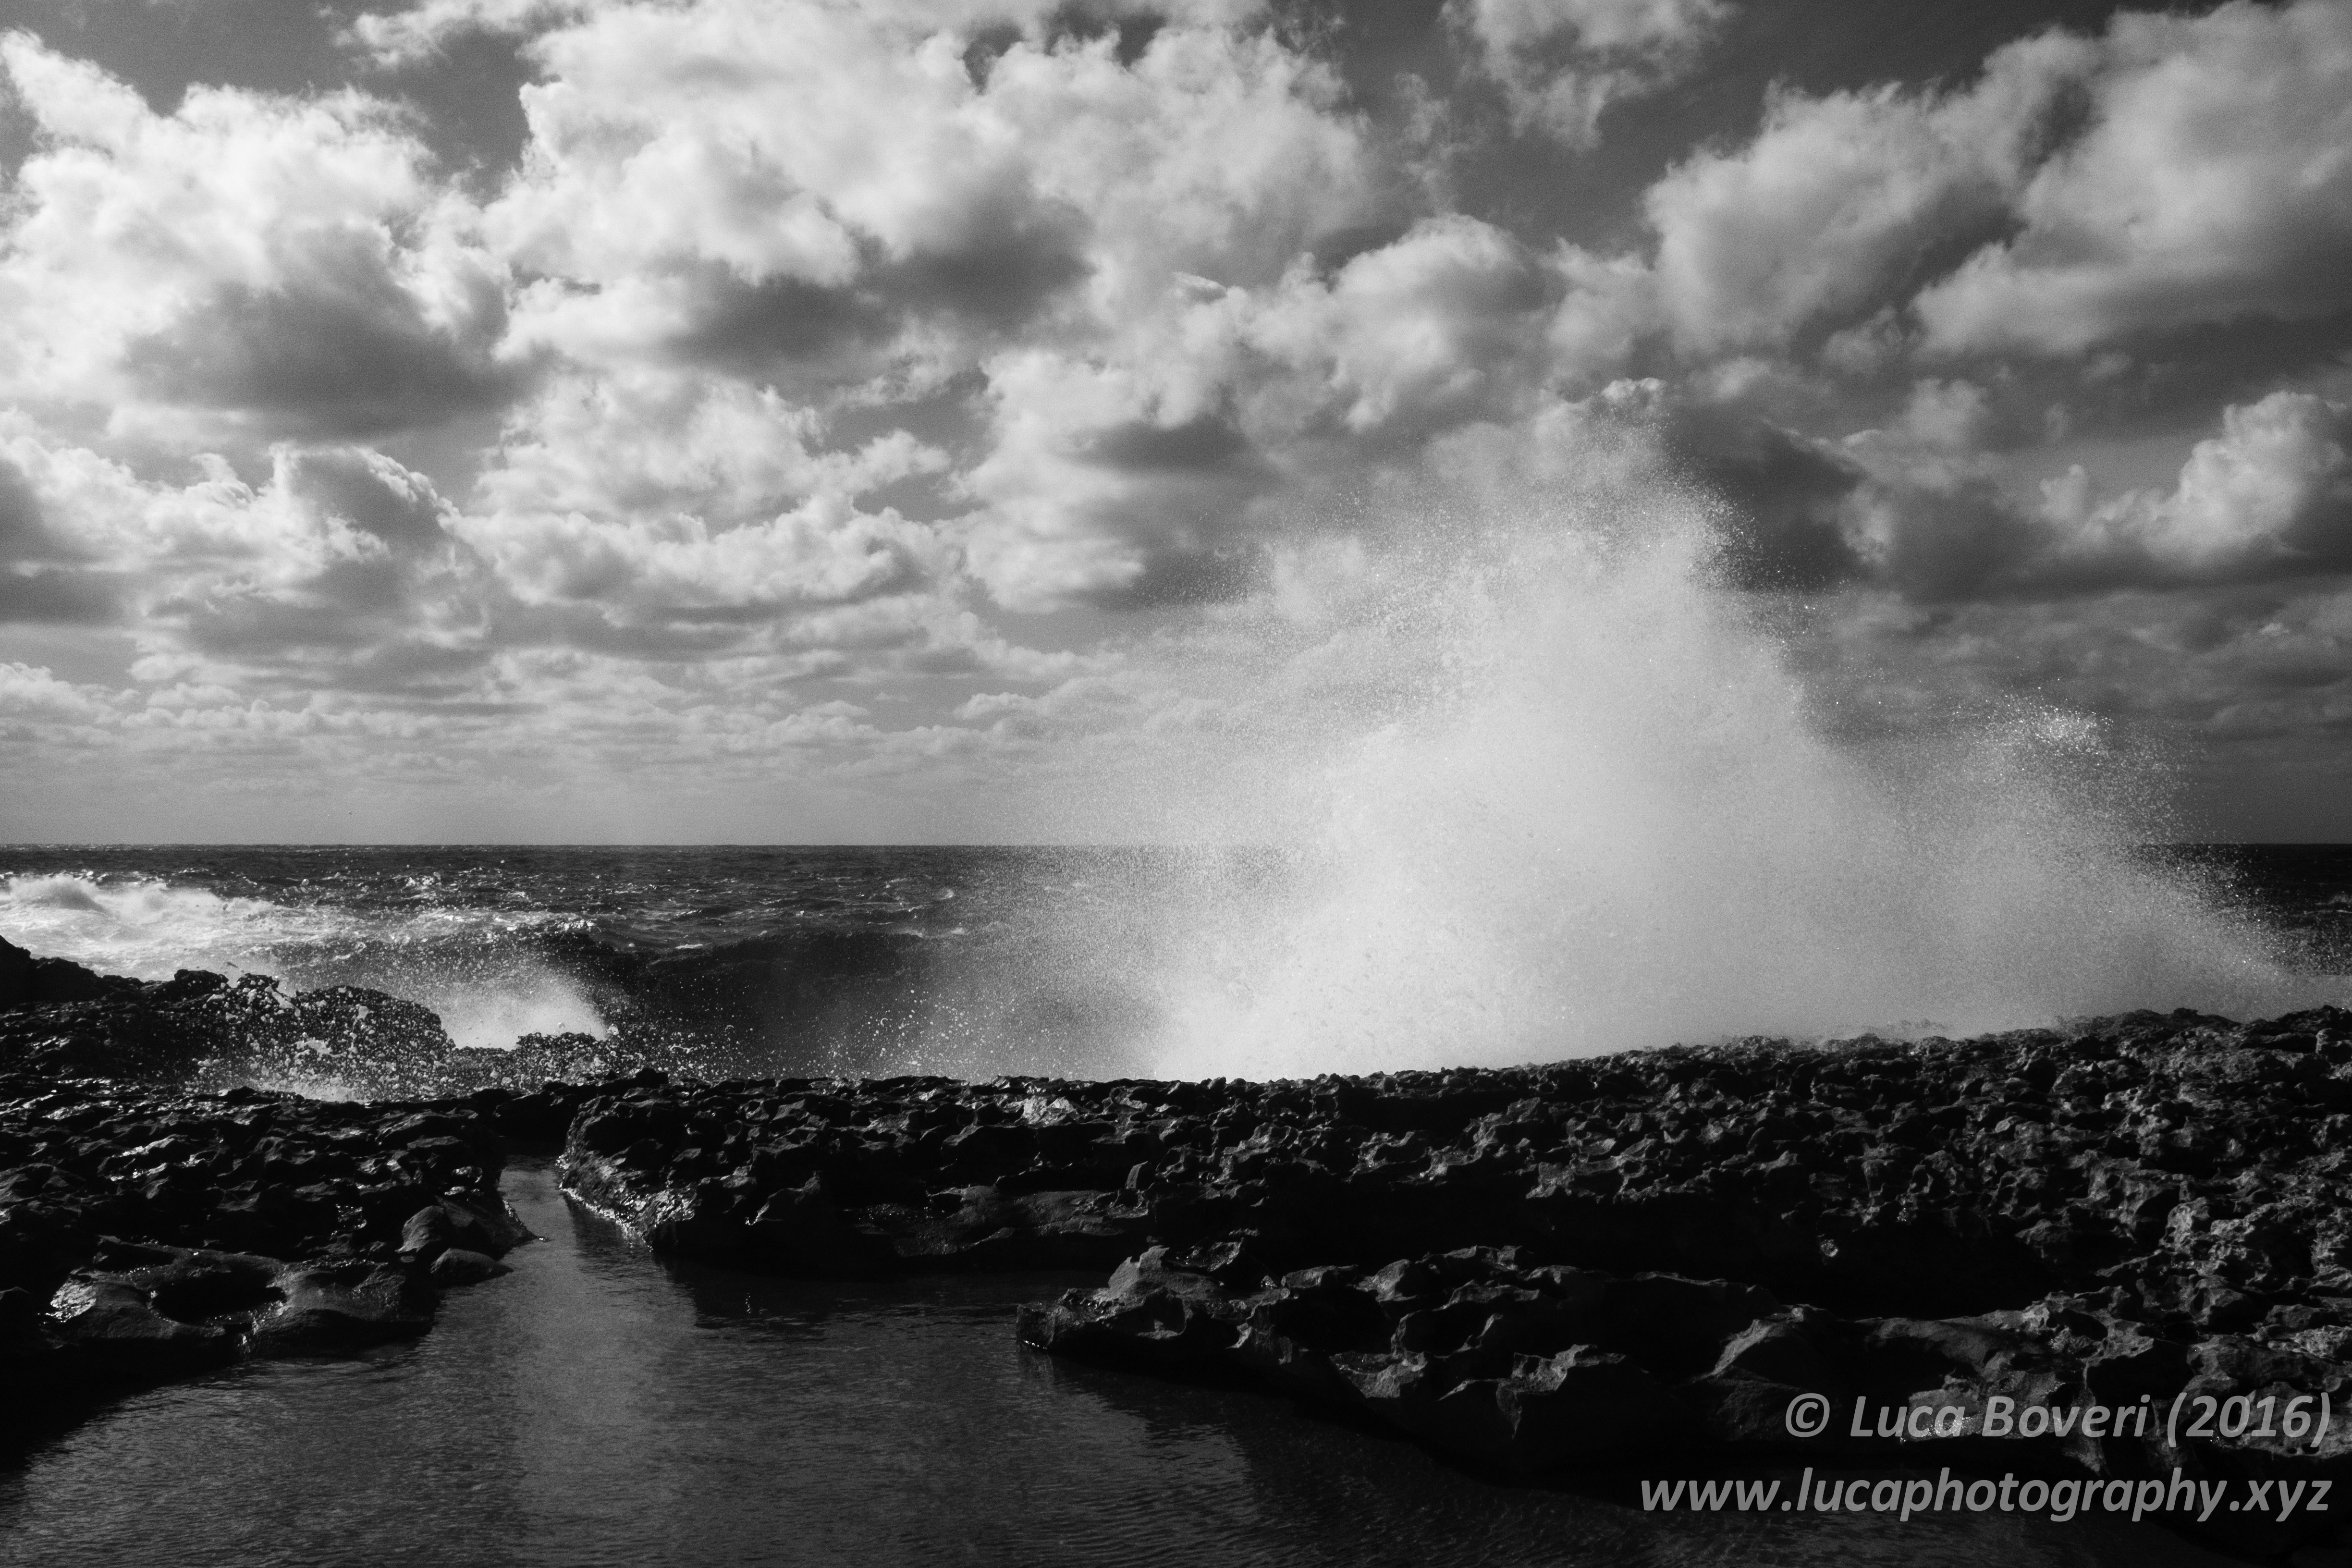 Waves in Malta. @lucaboveri